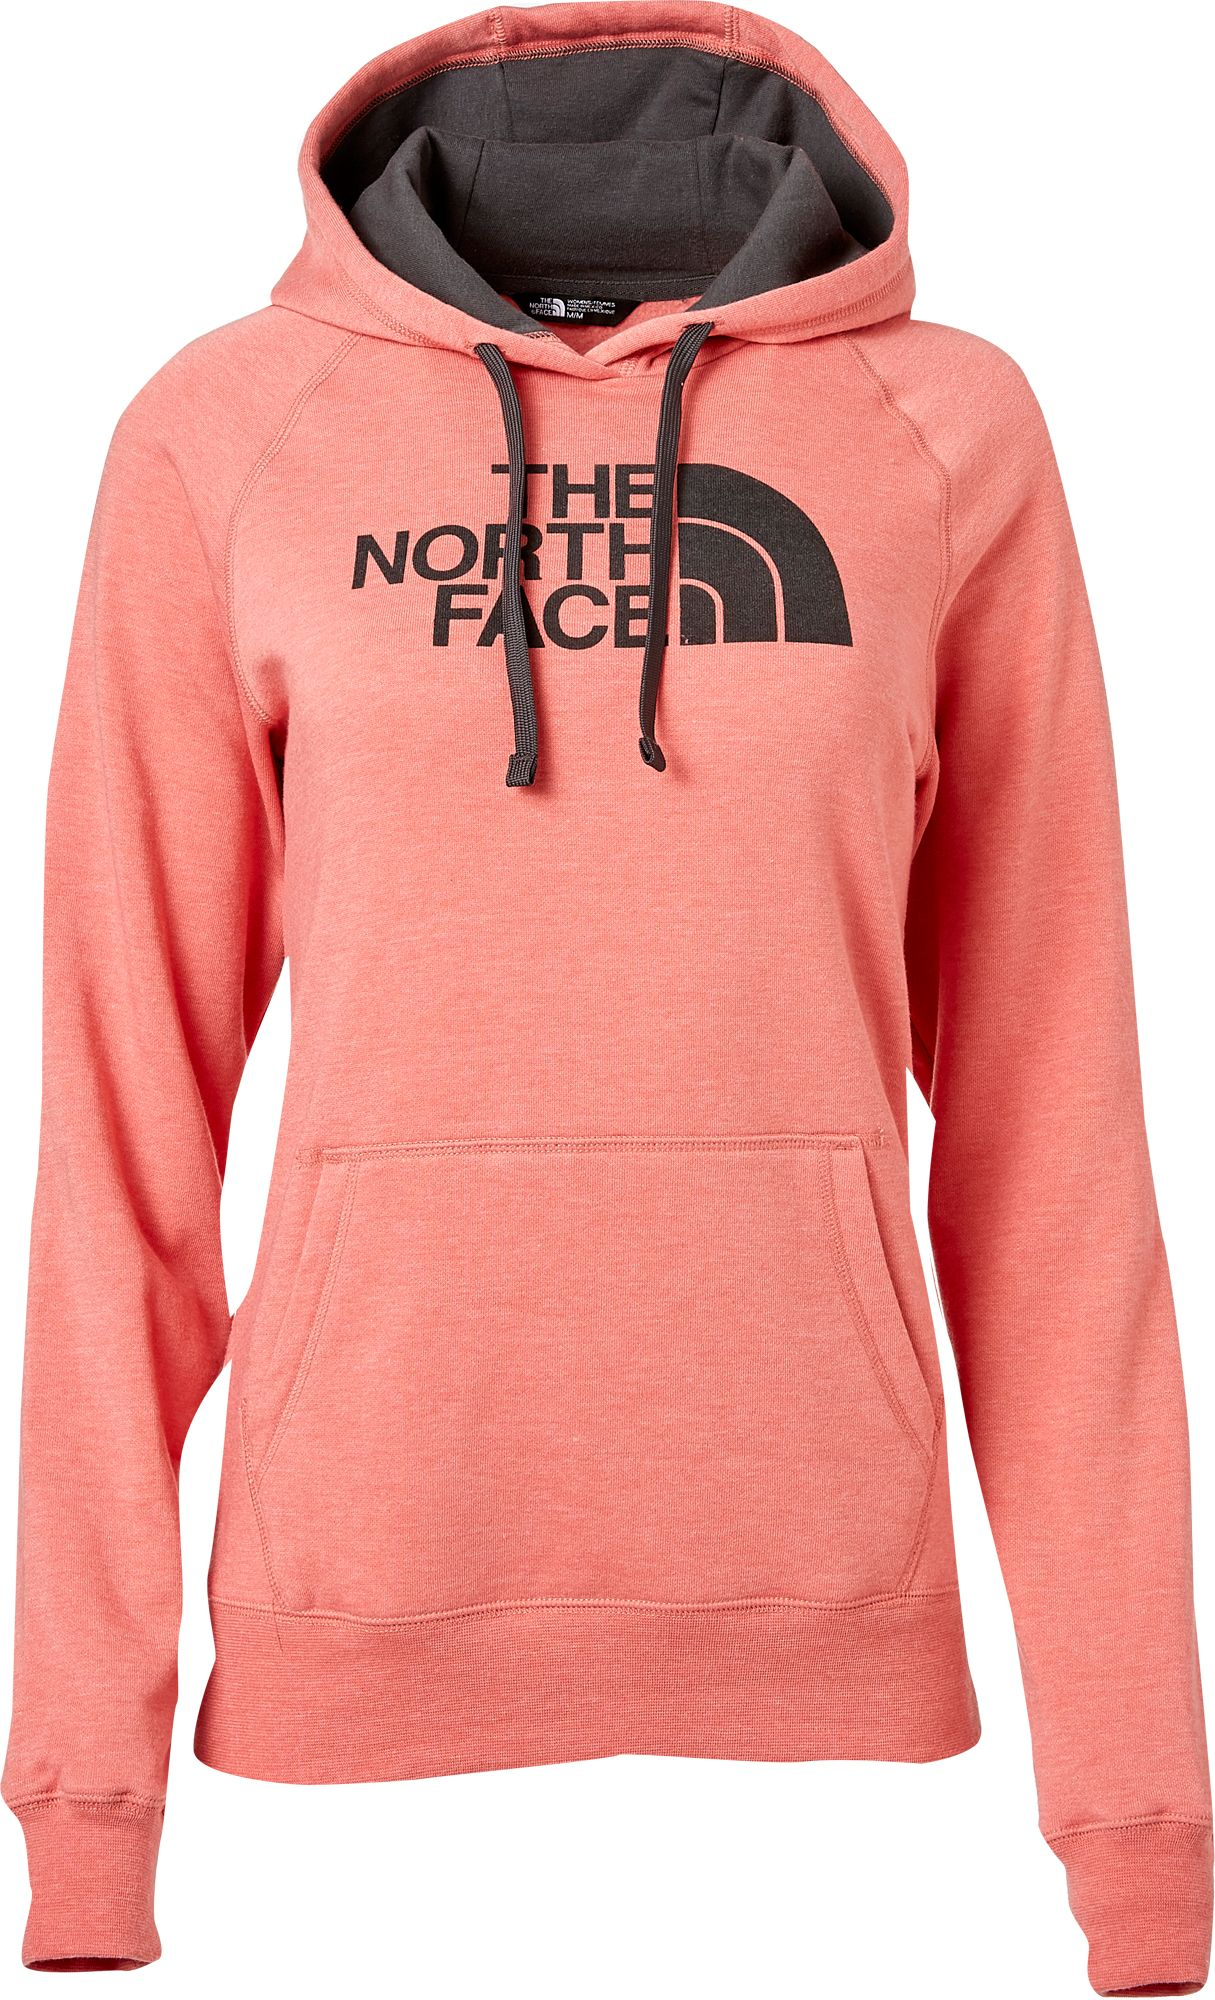 84a1966d3 The North Face Women's Half Dome Hoodie